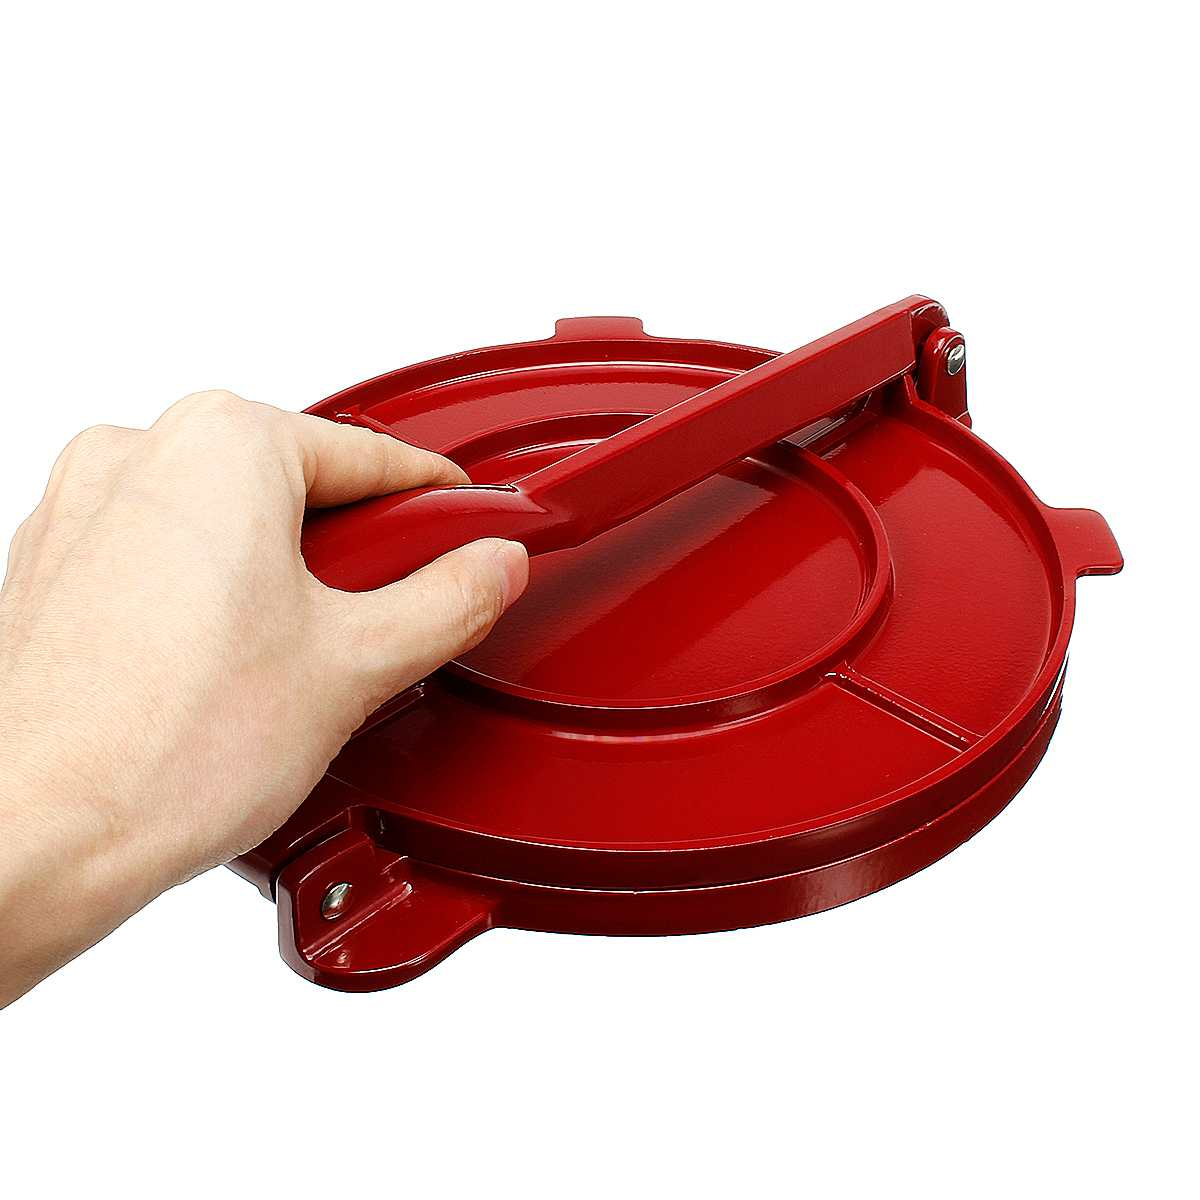 New Foldable 8 Inches Tortilla Press Maker Aluminum Flour Corn Baking Tool Bakeware DIY Pie Tools Gadgets Red Kitchen Accessorie image